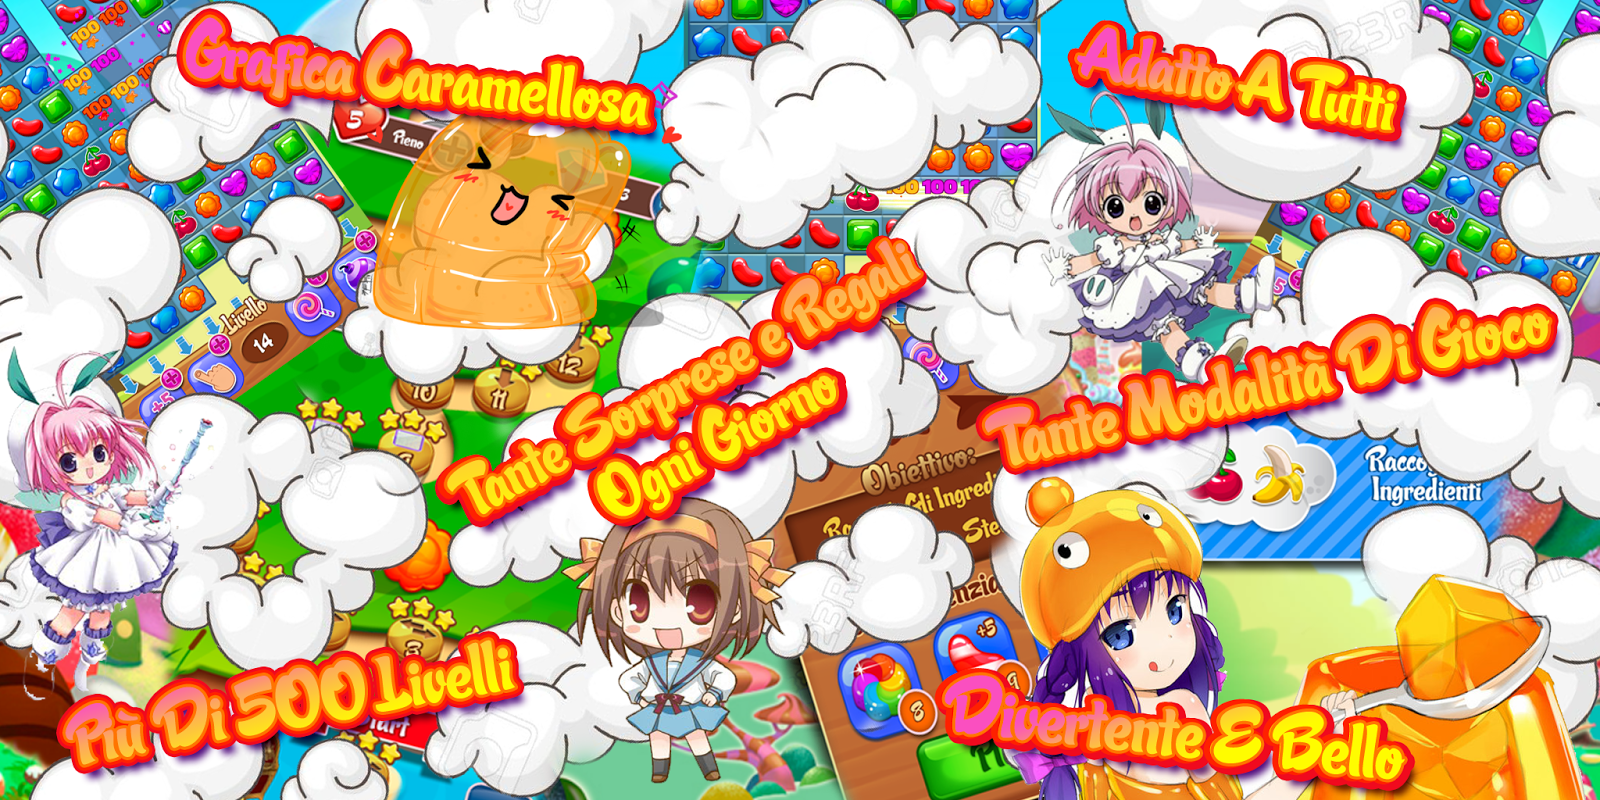 Download Choco Garden Saga ITA APK Mod APK Obb data 14 by